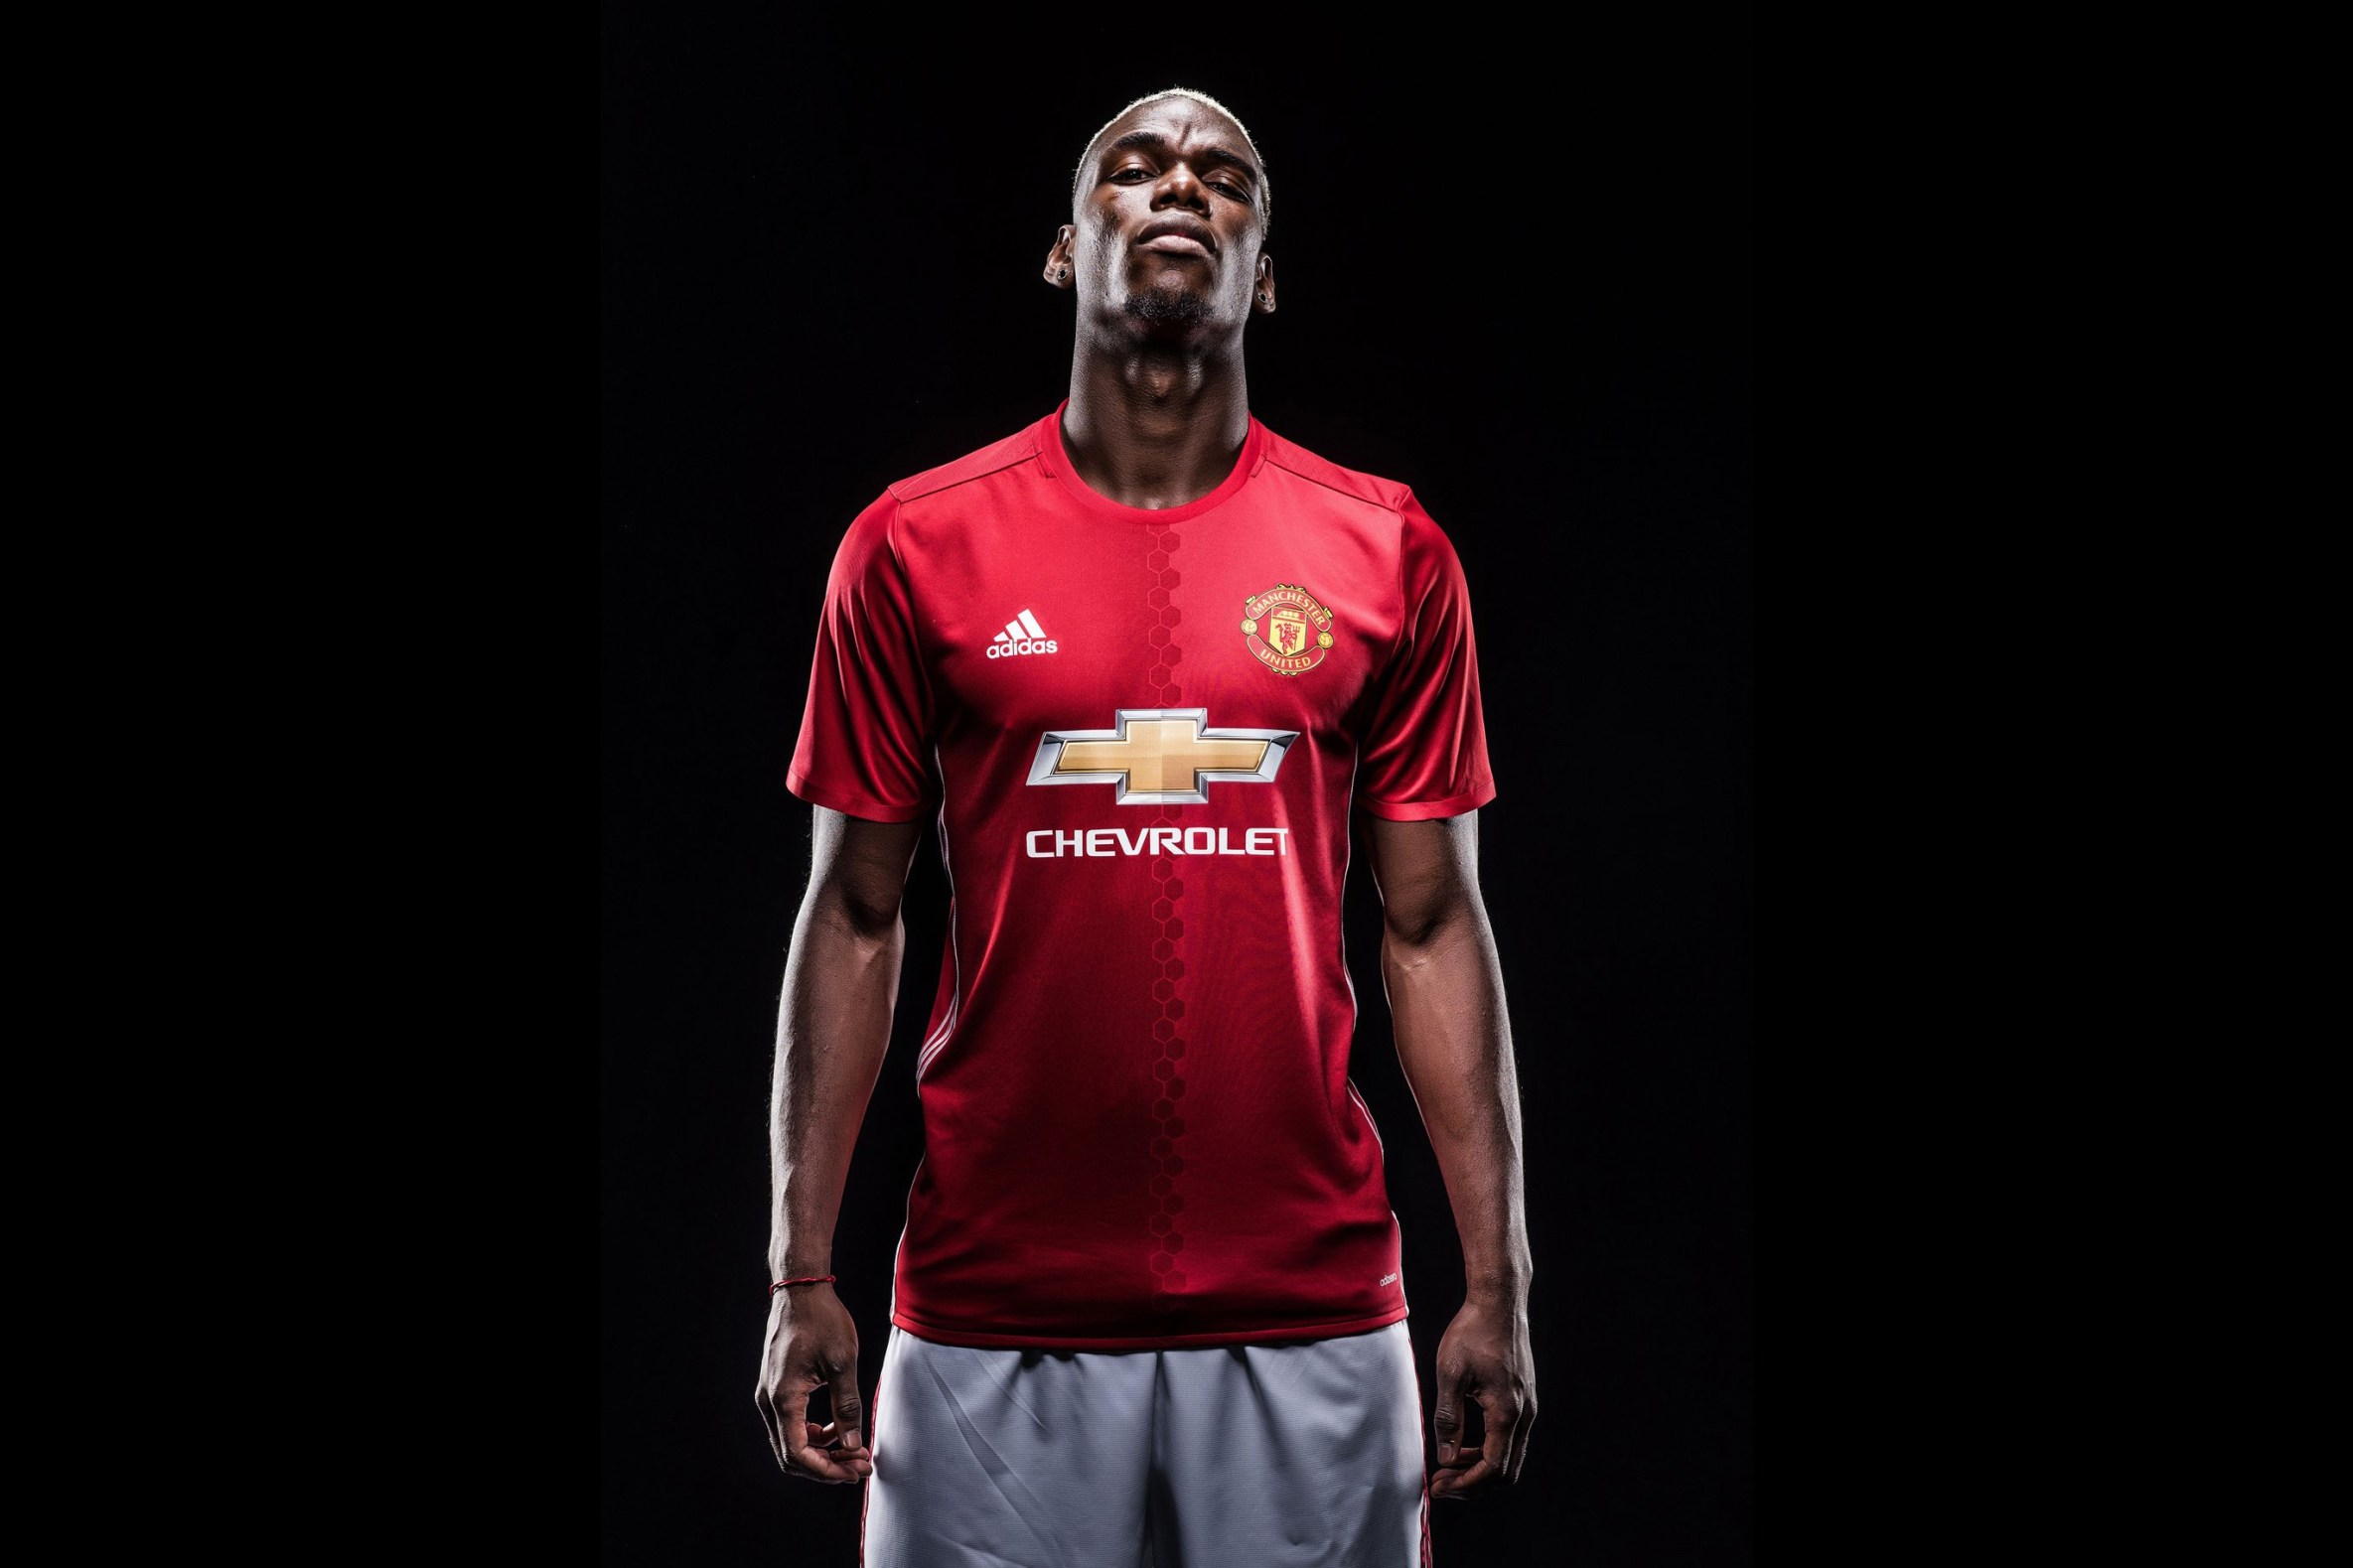 Paul Pogba Seals Record Transfer to Manchester United From Juventus